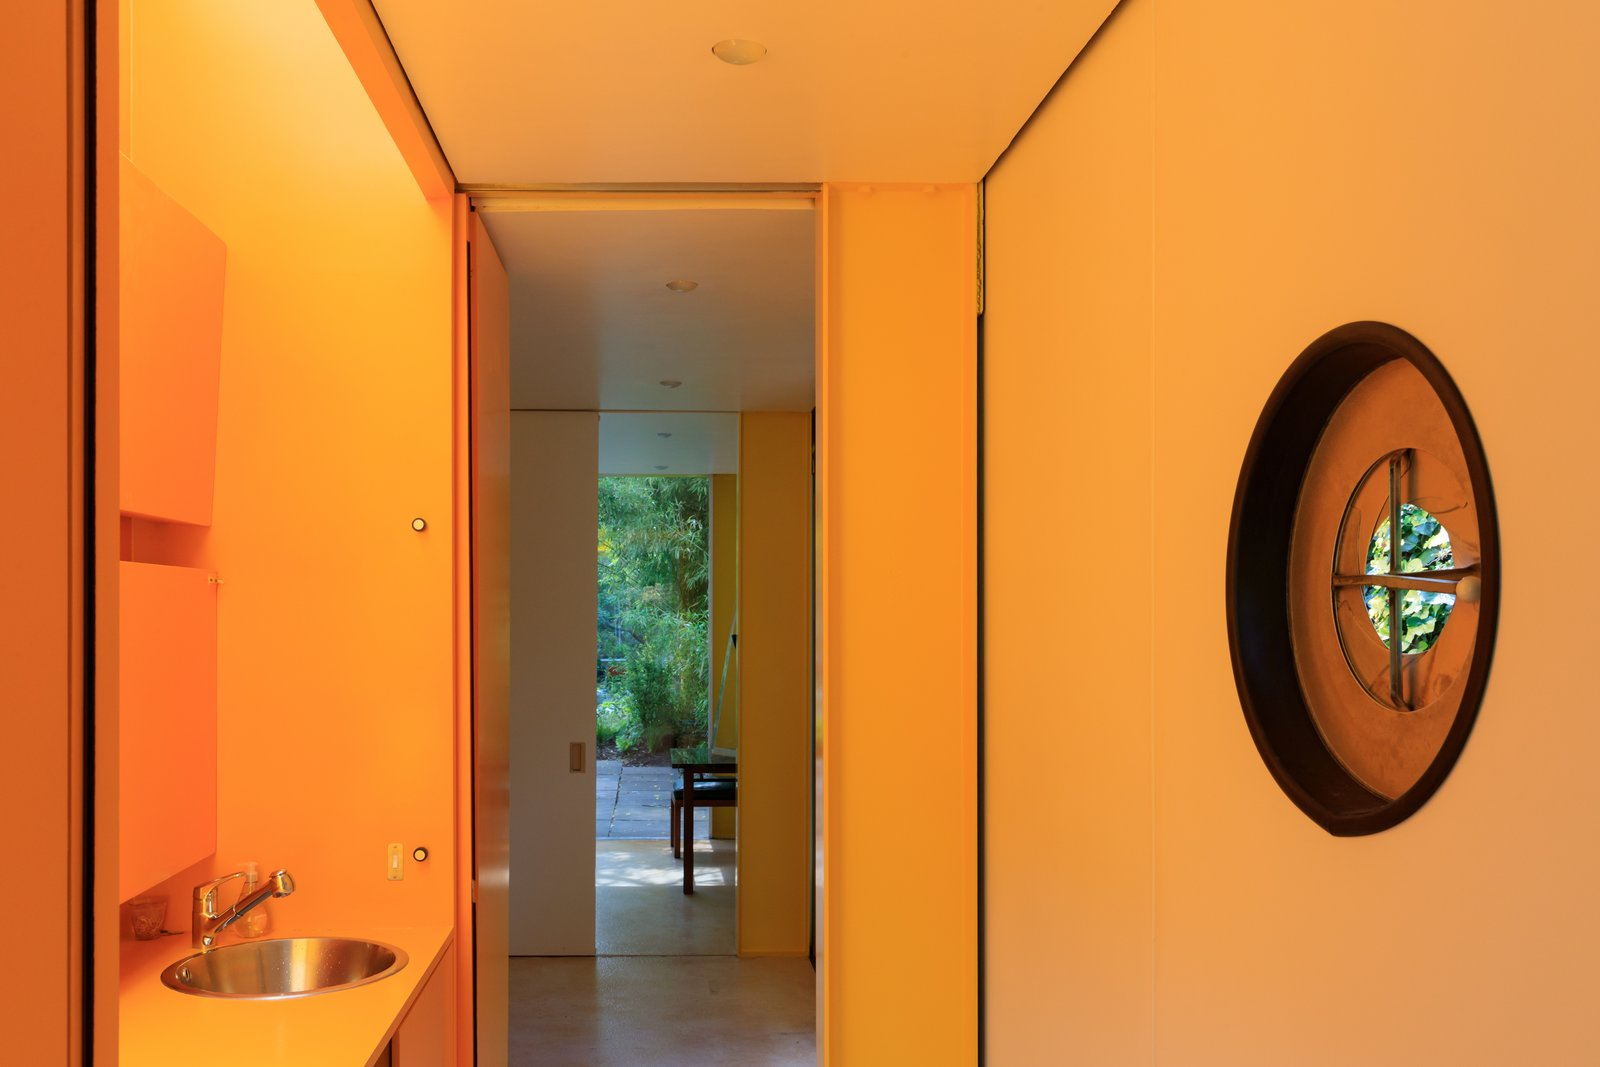 Tagged: Bath Room.  Photo 9 of 14 in Fully Renovated, Wimbledon House by Richard Rogers Hosts New Architecture Fellows in London